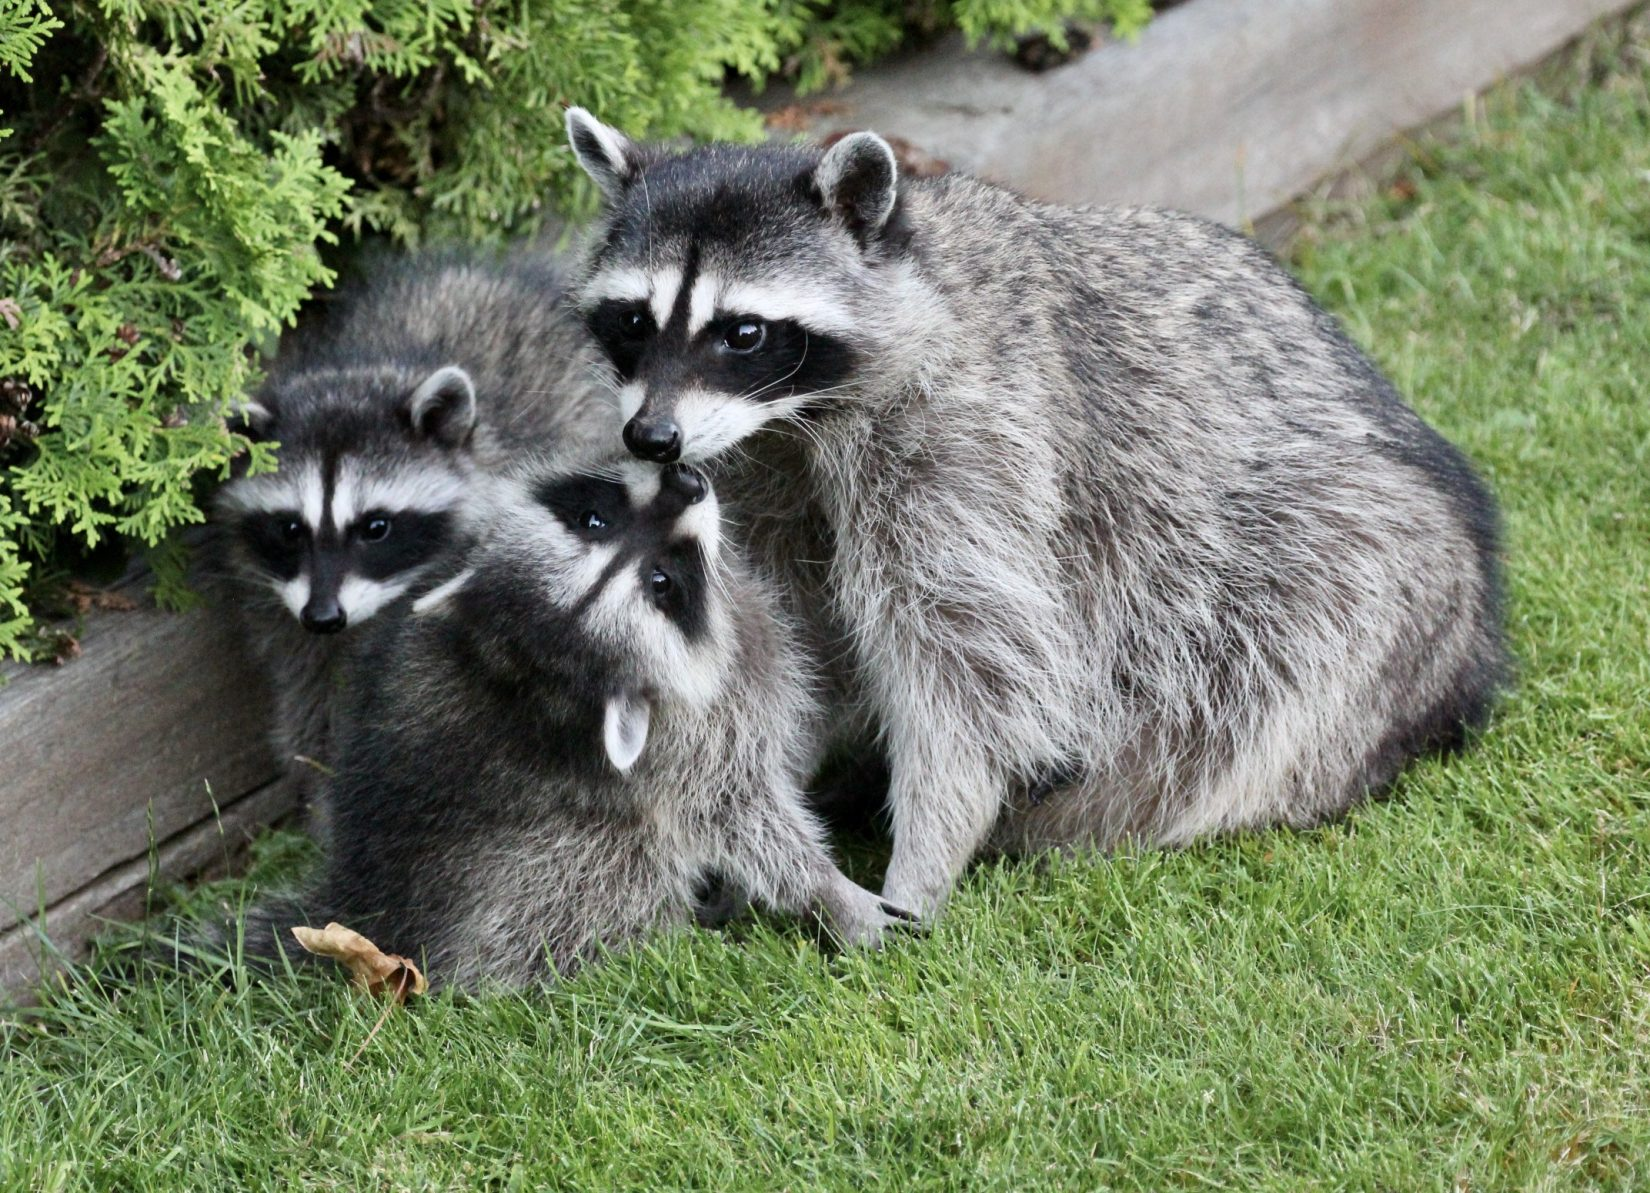 Raccoon mom with two young kits in grass